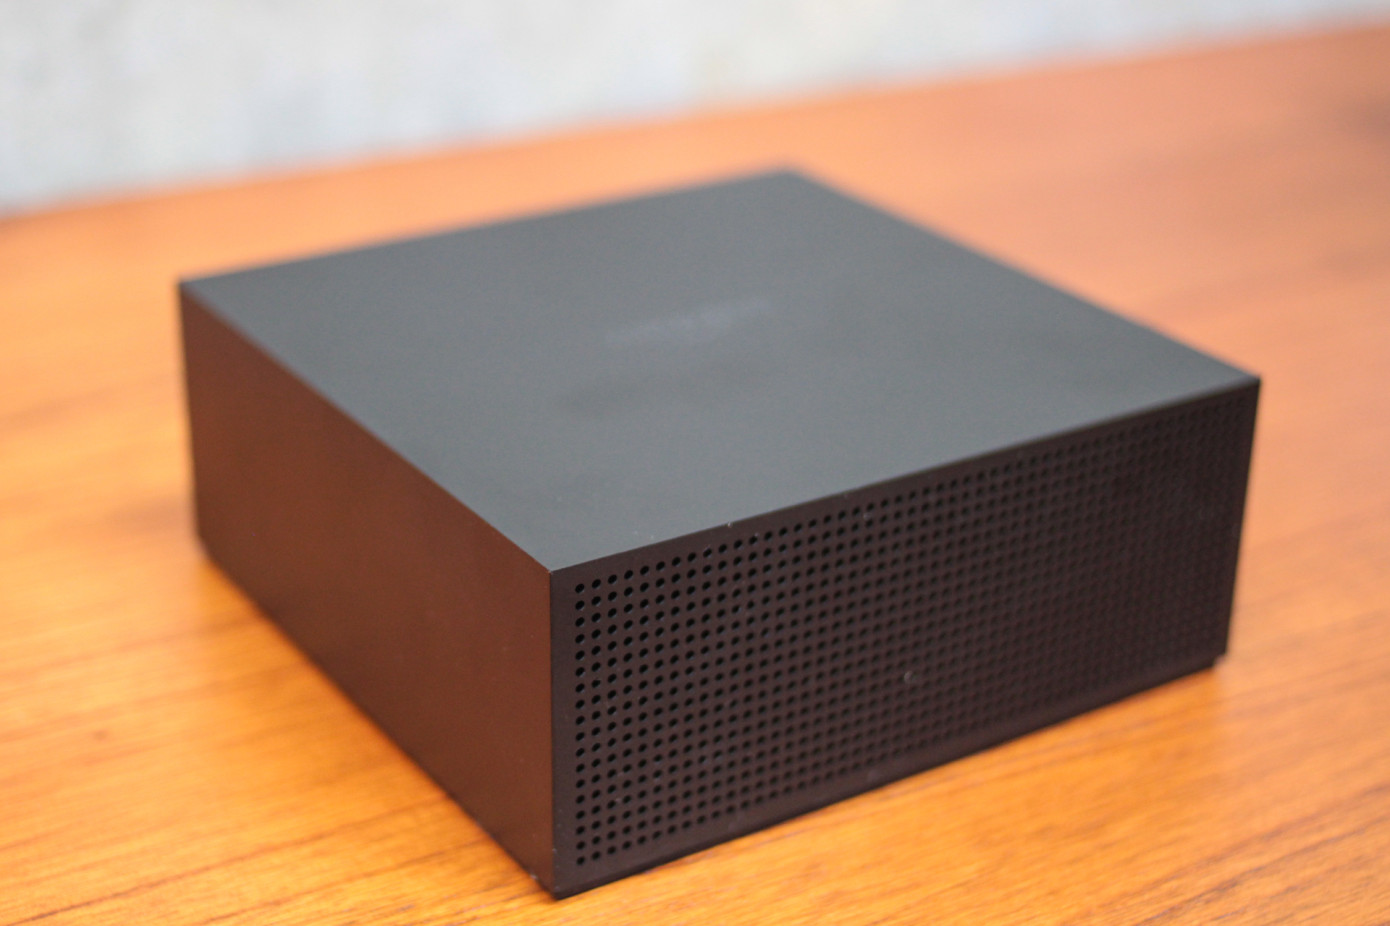 Amazon's Fire TV Recast is a decent DVR for antenna users